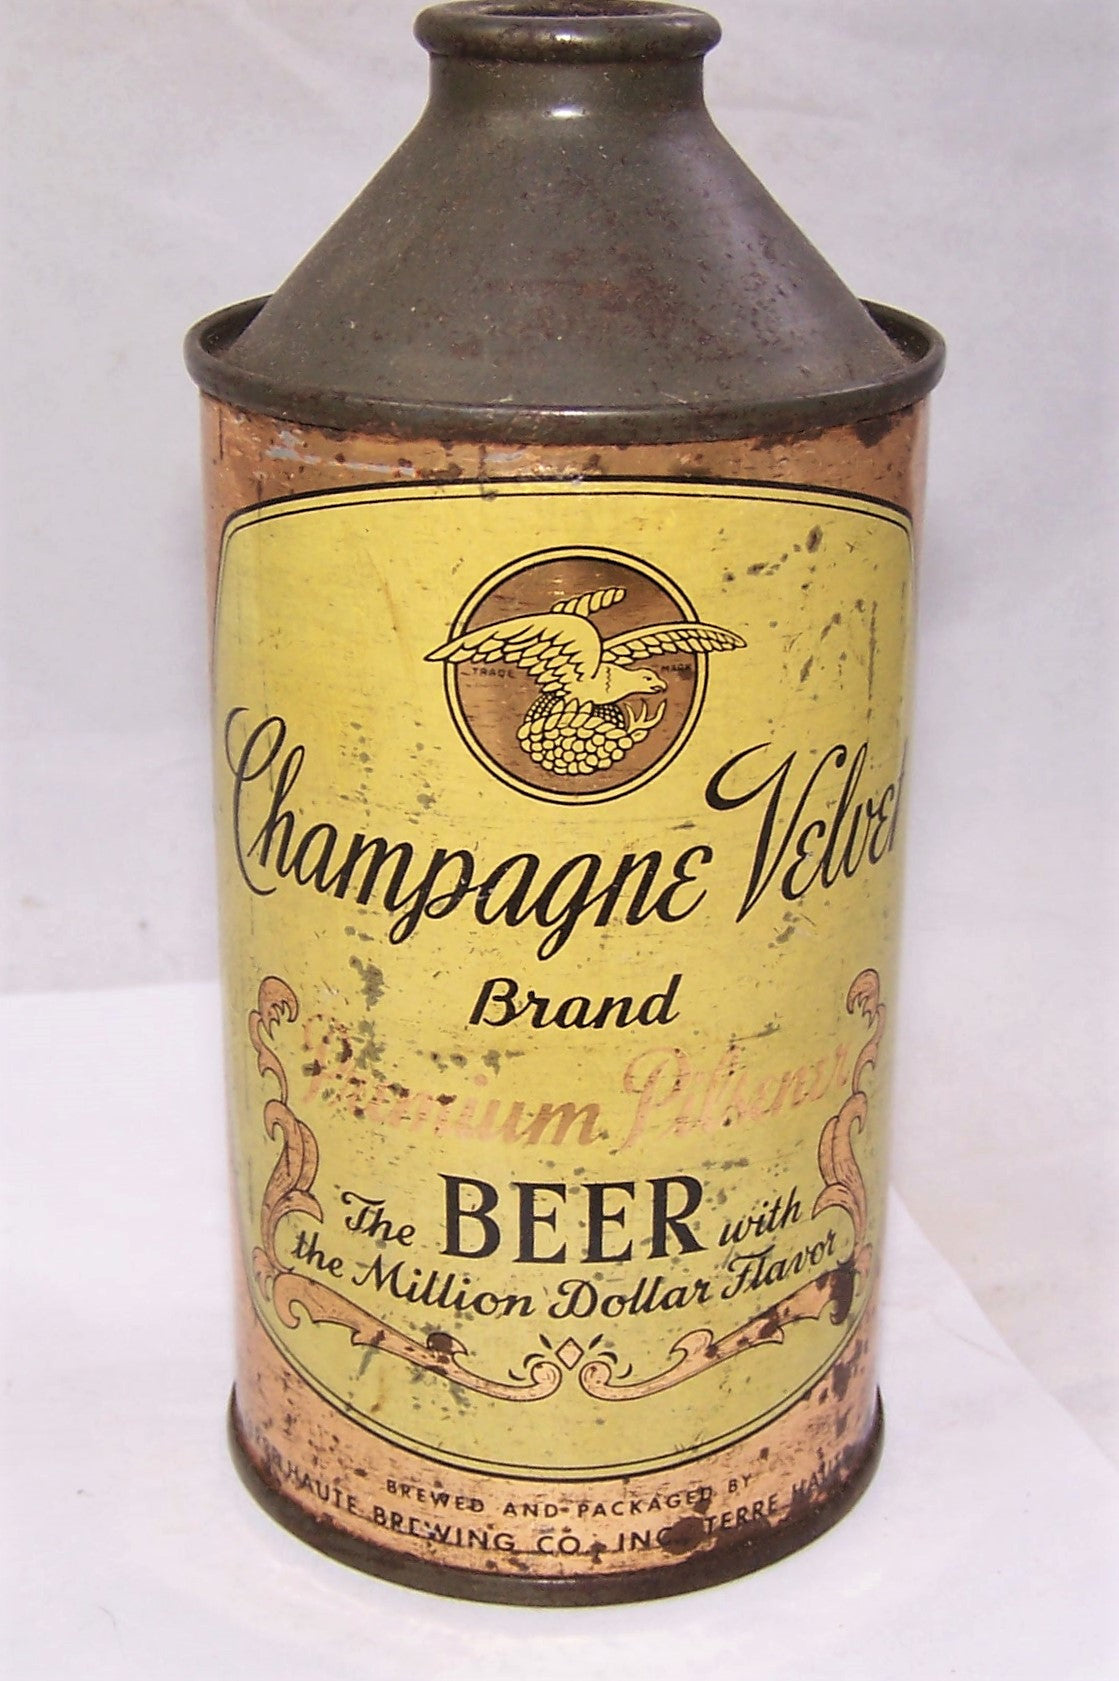 Champagne Velvet Cone Top Beer Can